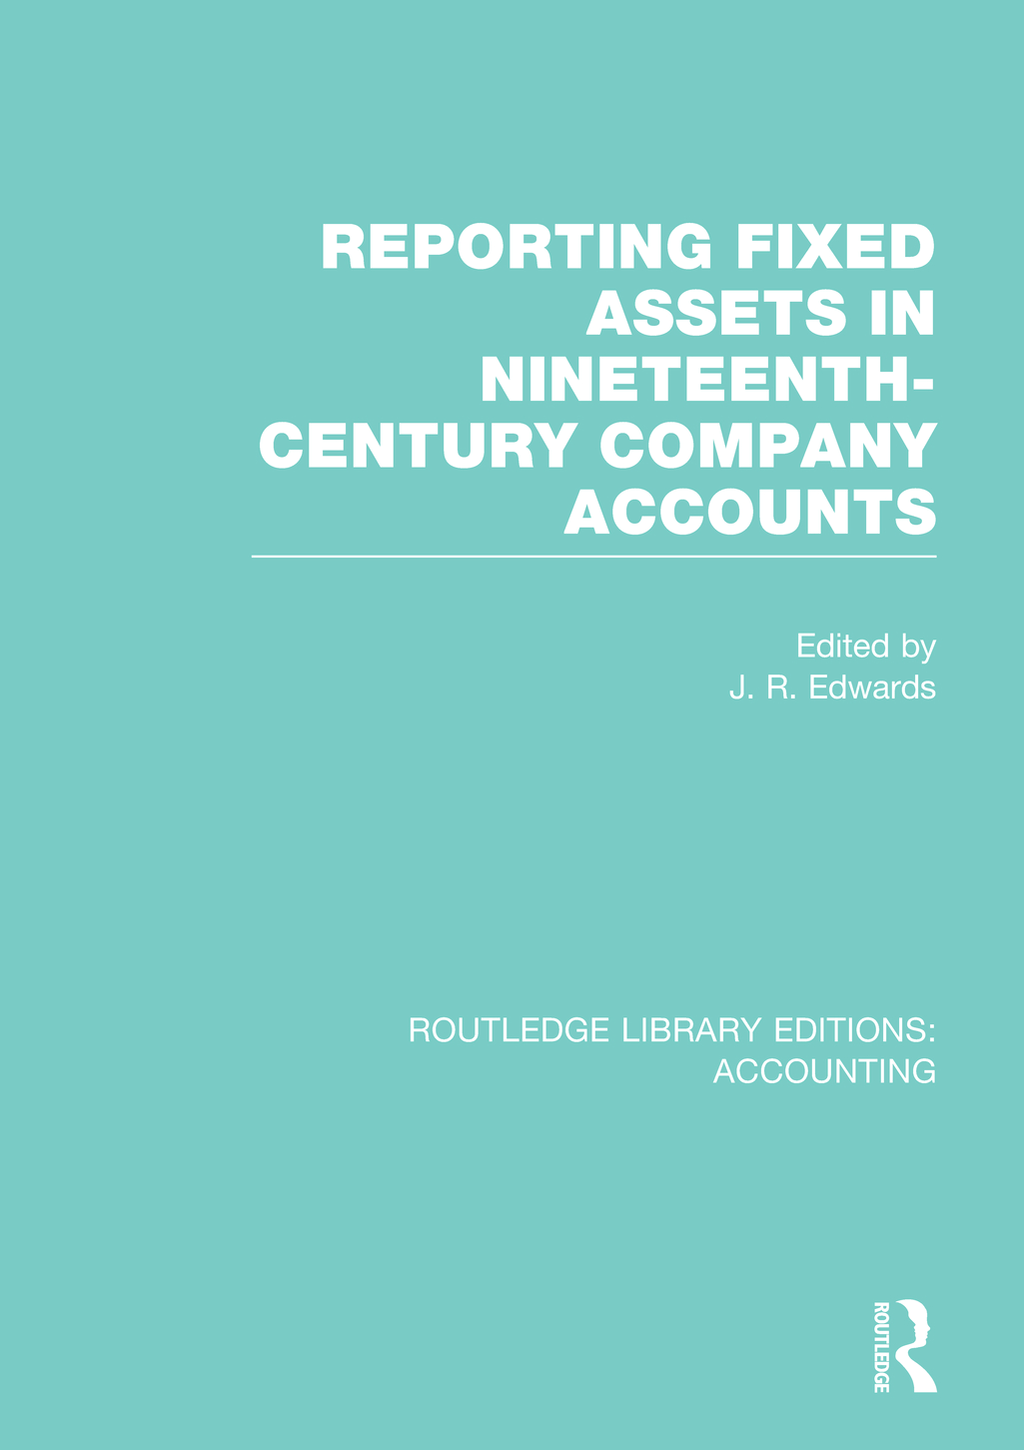 Reporting fixed assets in nineteenth-century company accounts